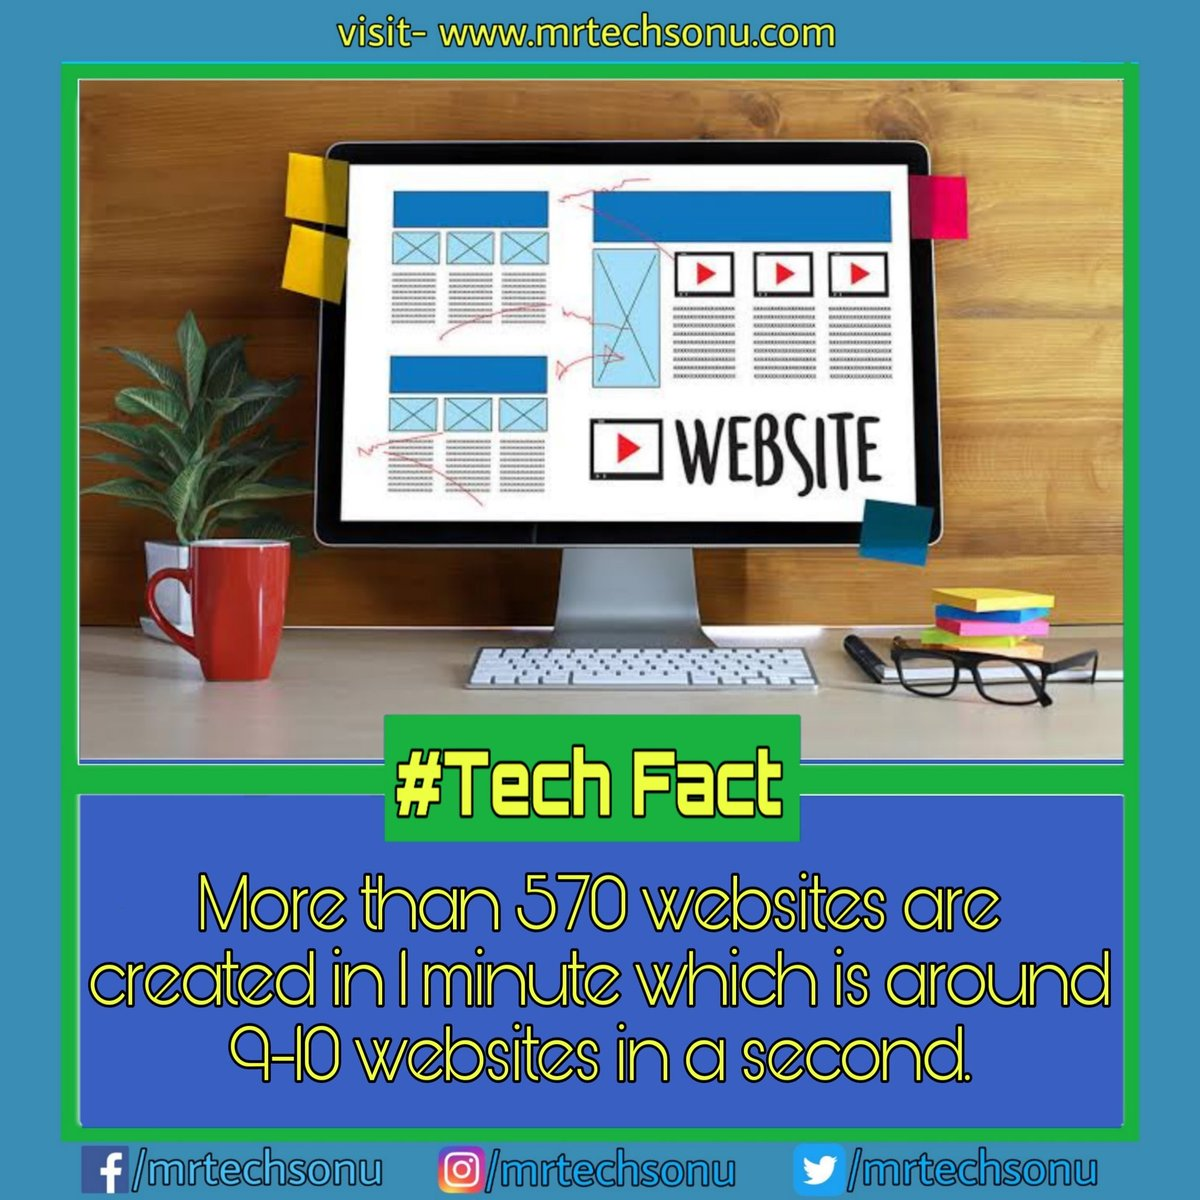 Visit- http://mrtechsonu.com for more stuffs like this . It means while reading the post, more than 50 websites have been created . #technologyrocks#technologyr#technologylover#technologytrends#instatechnology#remotecontrol#primitivetechnology#technews#techvideospic.twitter.com/KVPgKzhEC5